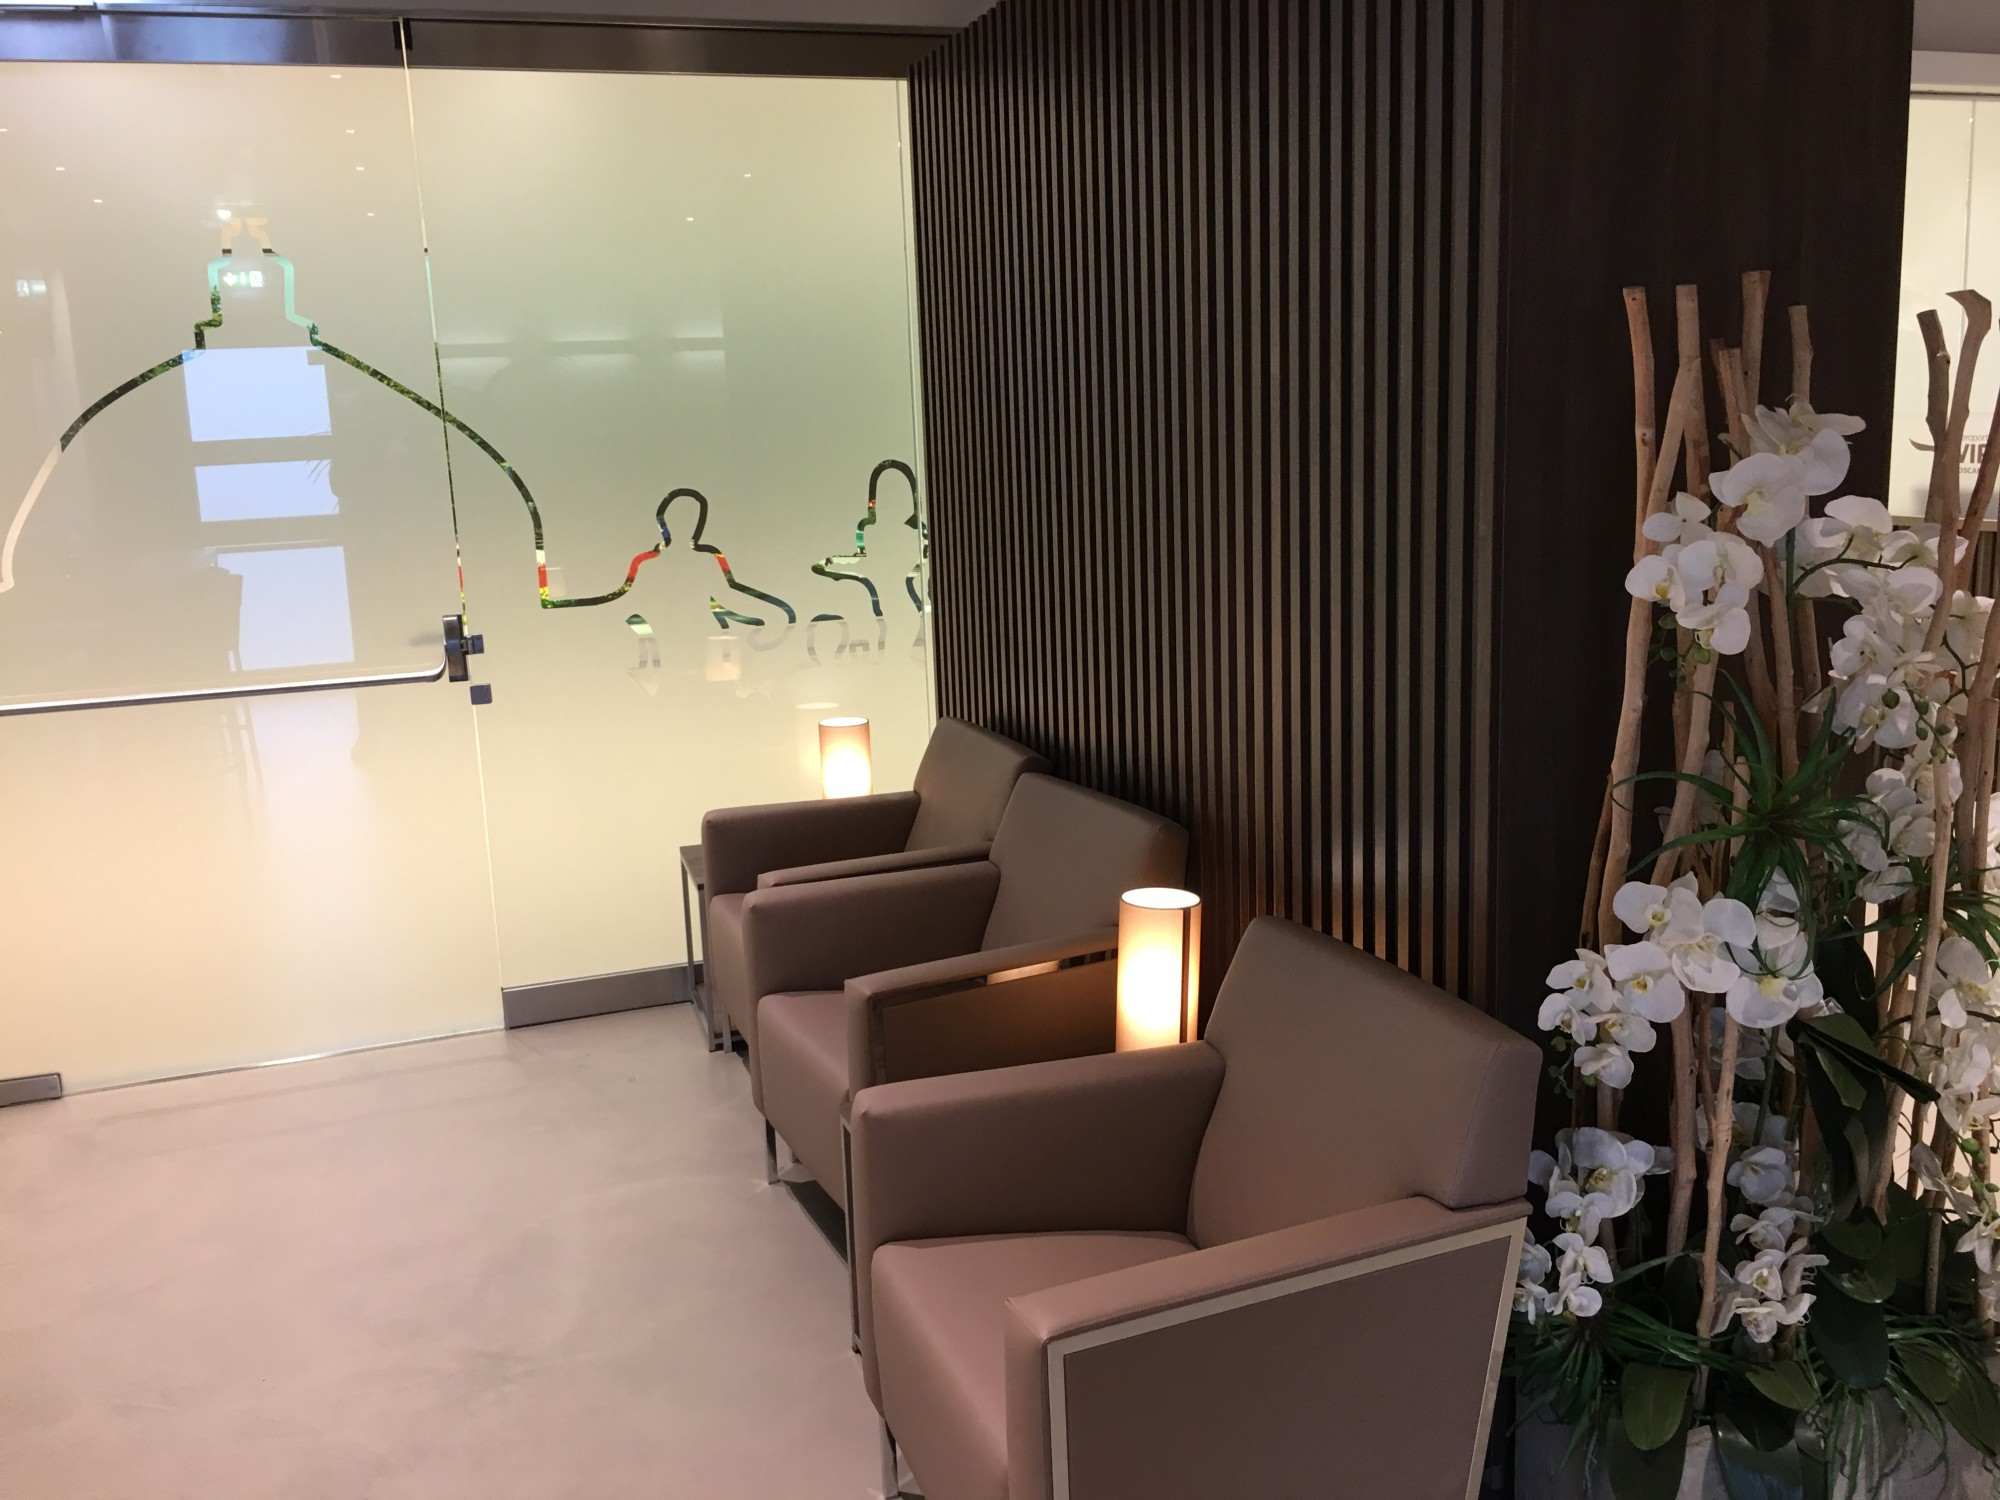 Flr Aeroporti Vip Club Toscana Sala Masaccio Reviews Photos  # Muebles Vaoli Leon